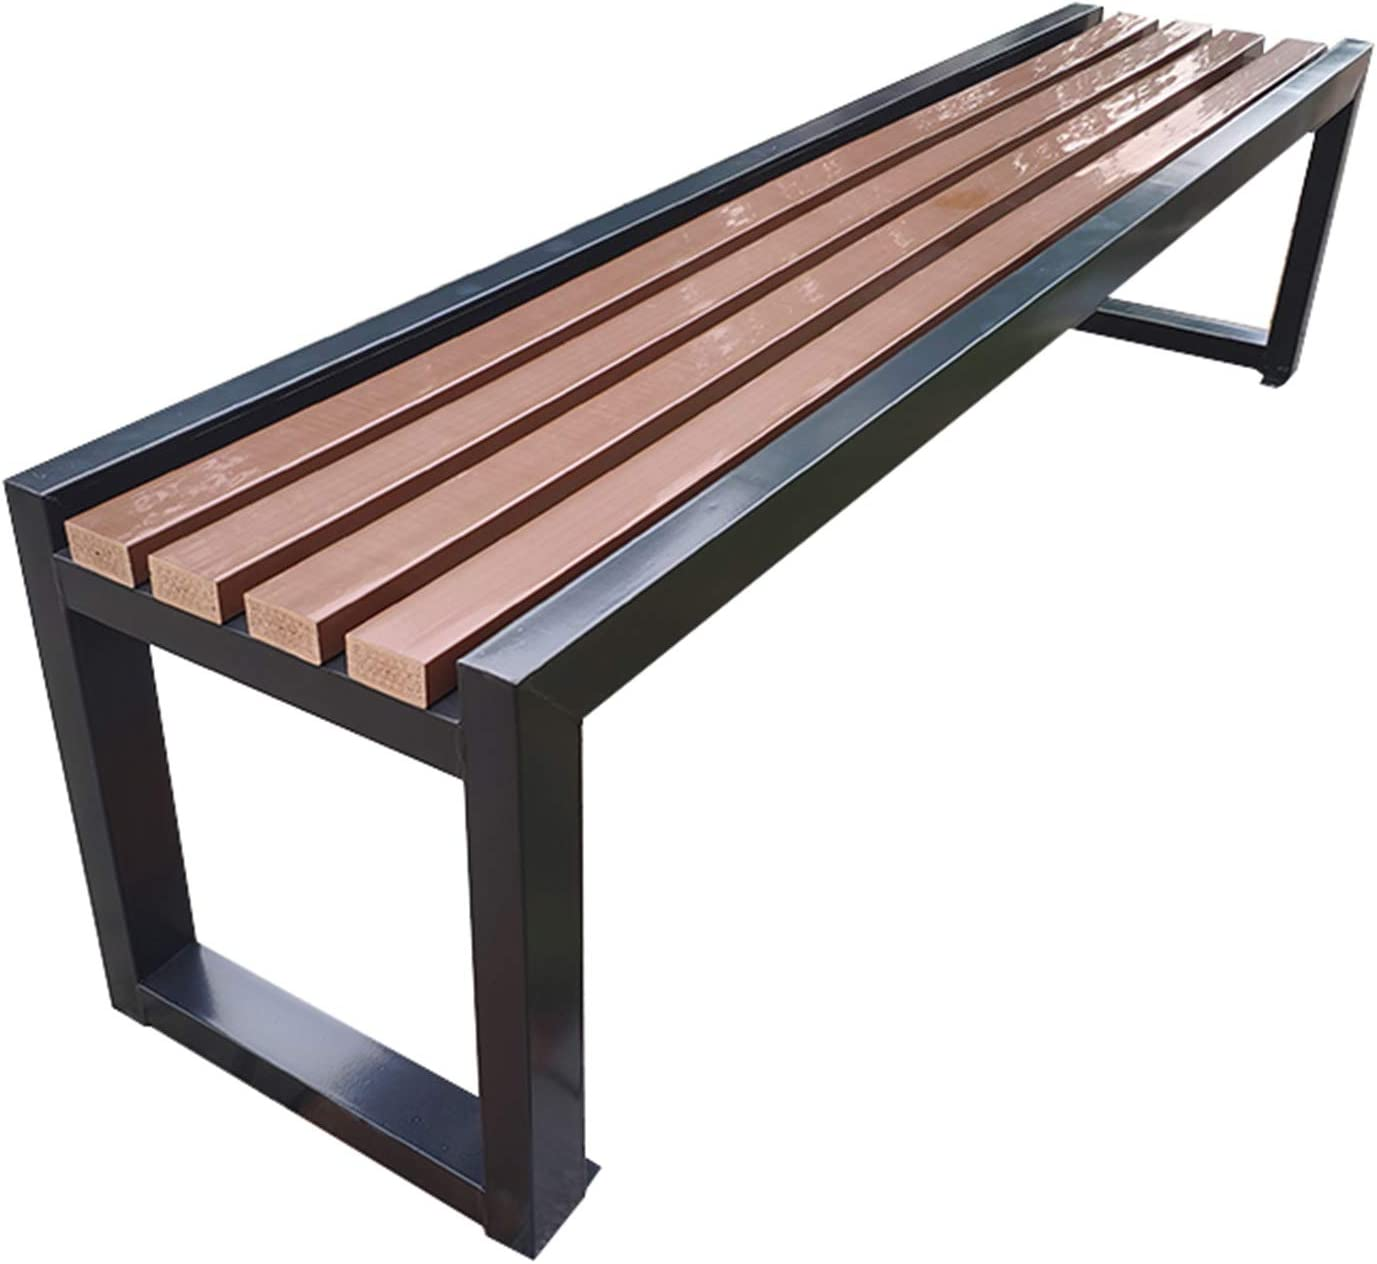 Outdoor Terrace Garden Bench Park Bench, 3-Seater Weather-Resistant Porch Chair with backrest, Steel Frame and anticorrosive Solid Wood slatted Seats, The Perfect Furniture Outdoors